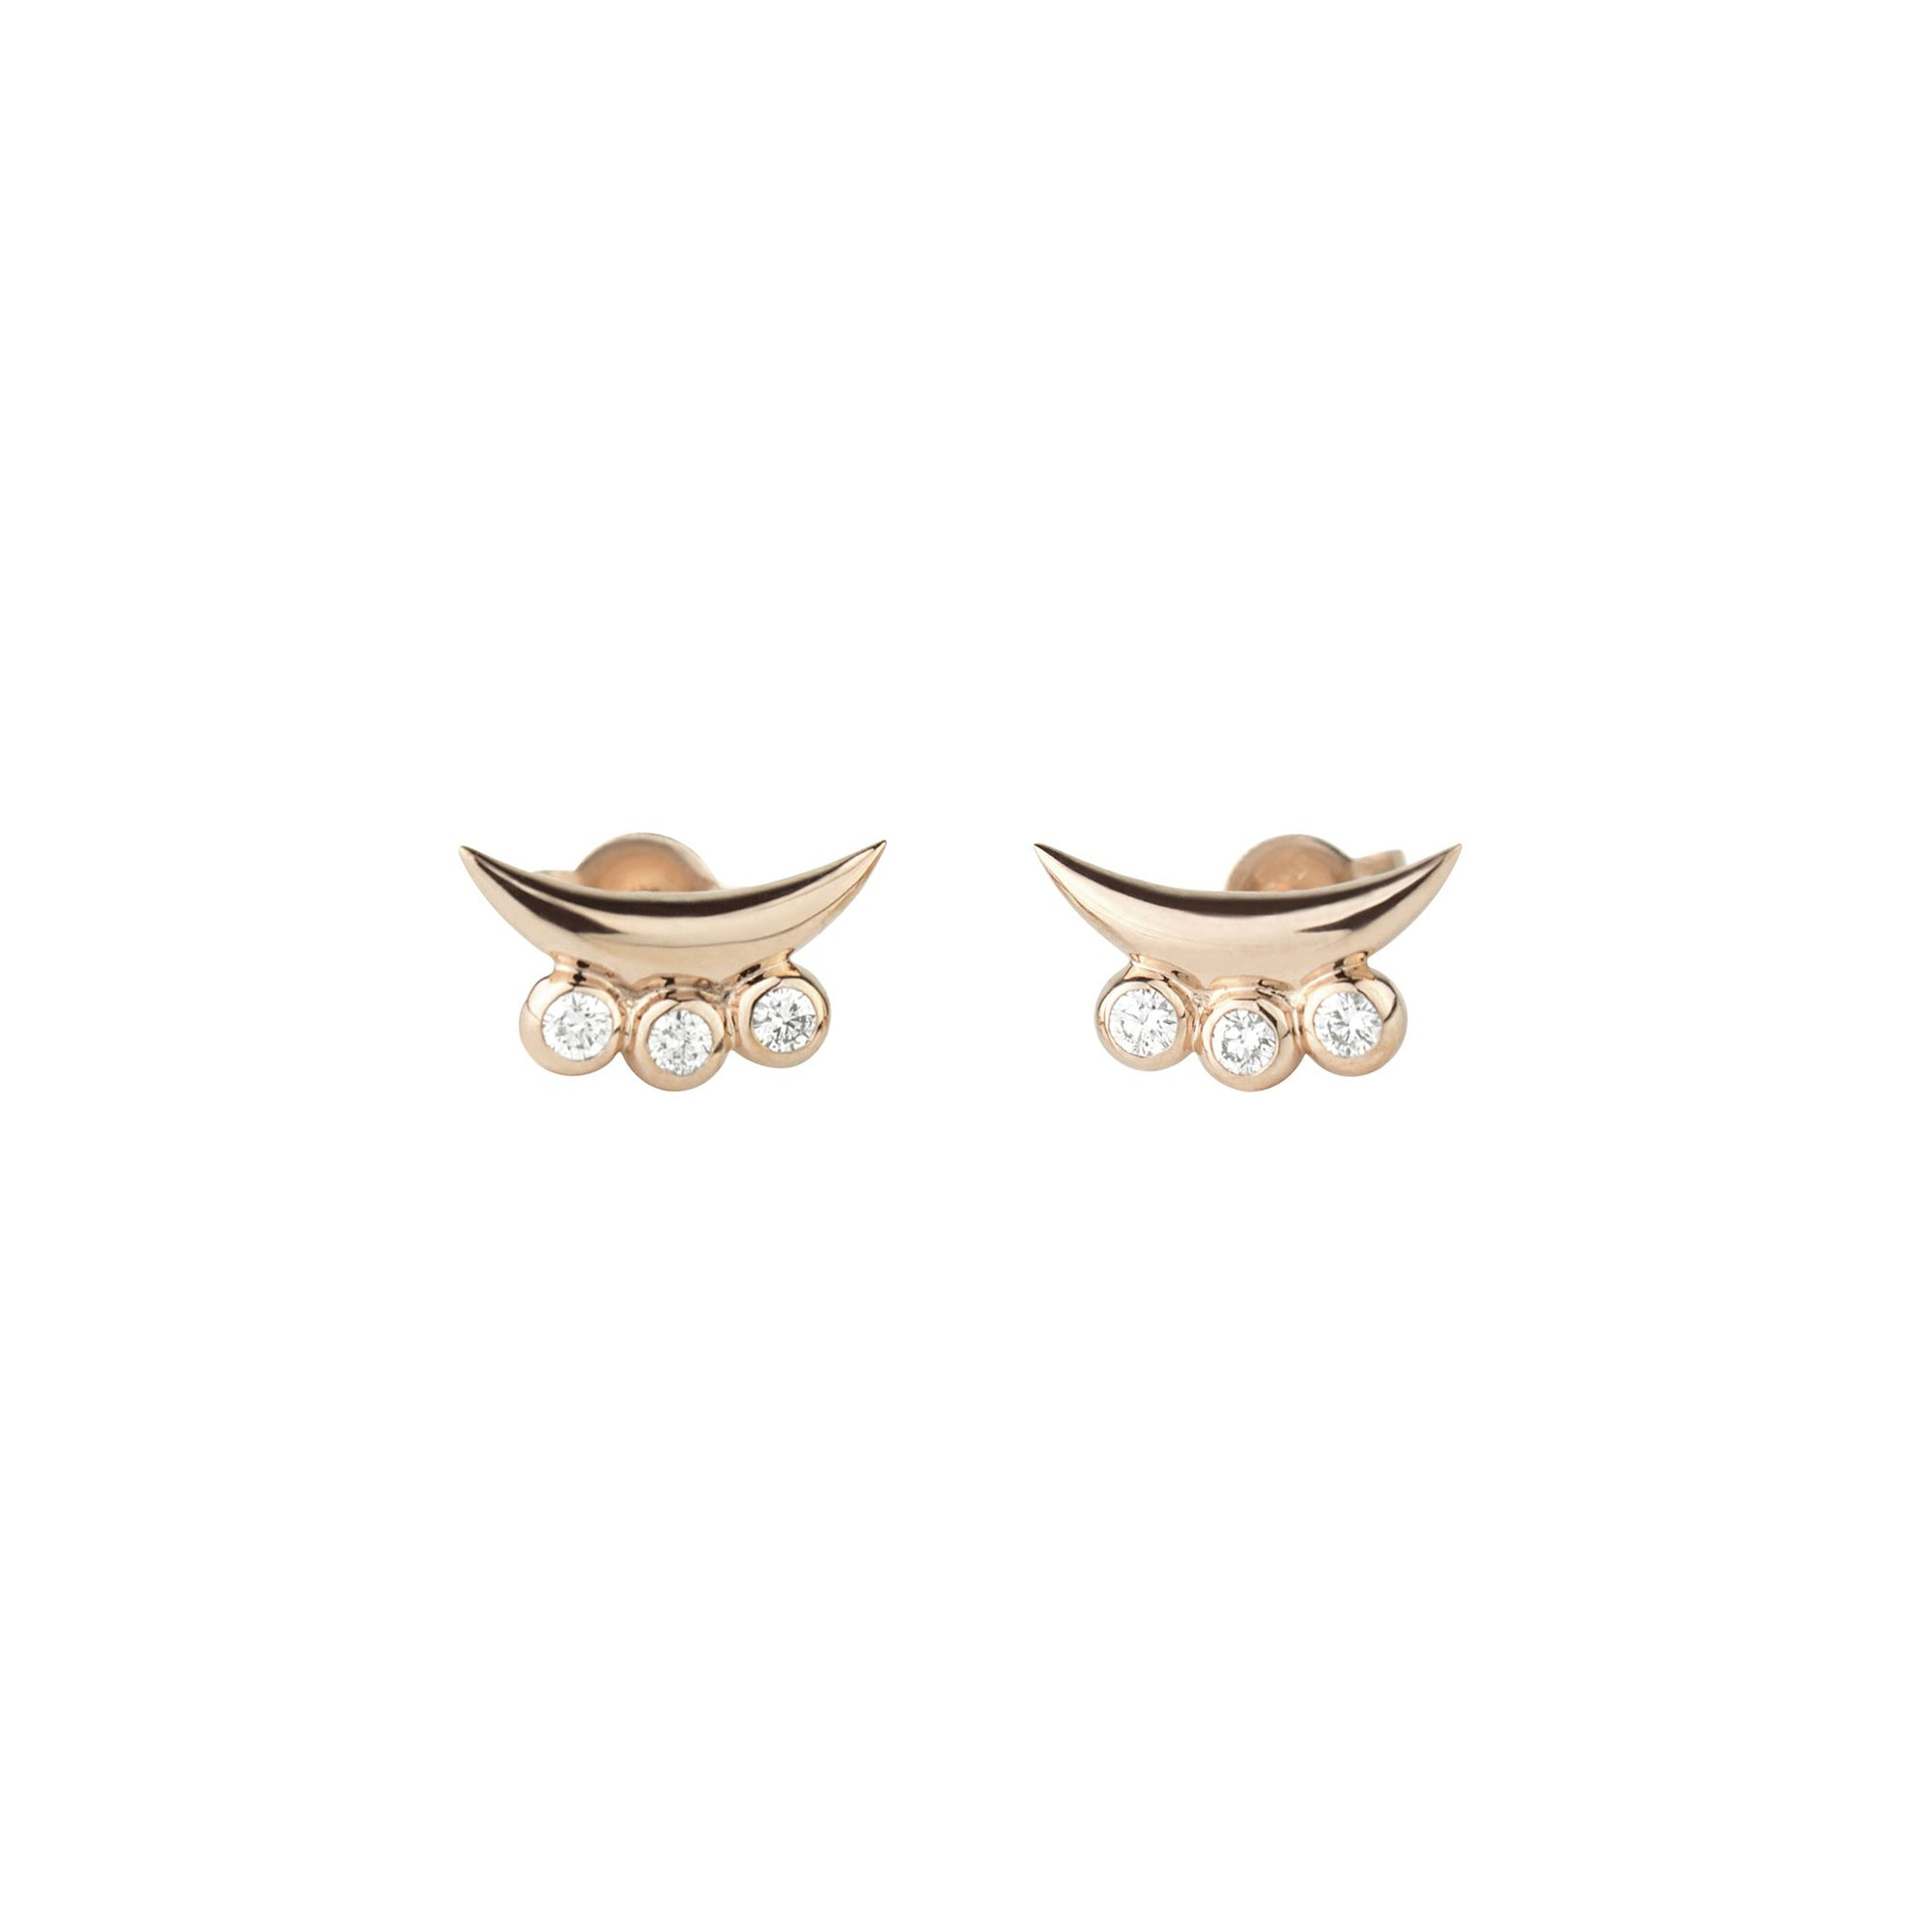 Genie Studs - Altruist - Earrings | Broken English Jewelry